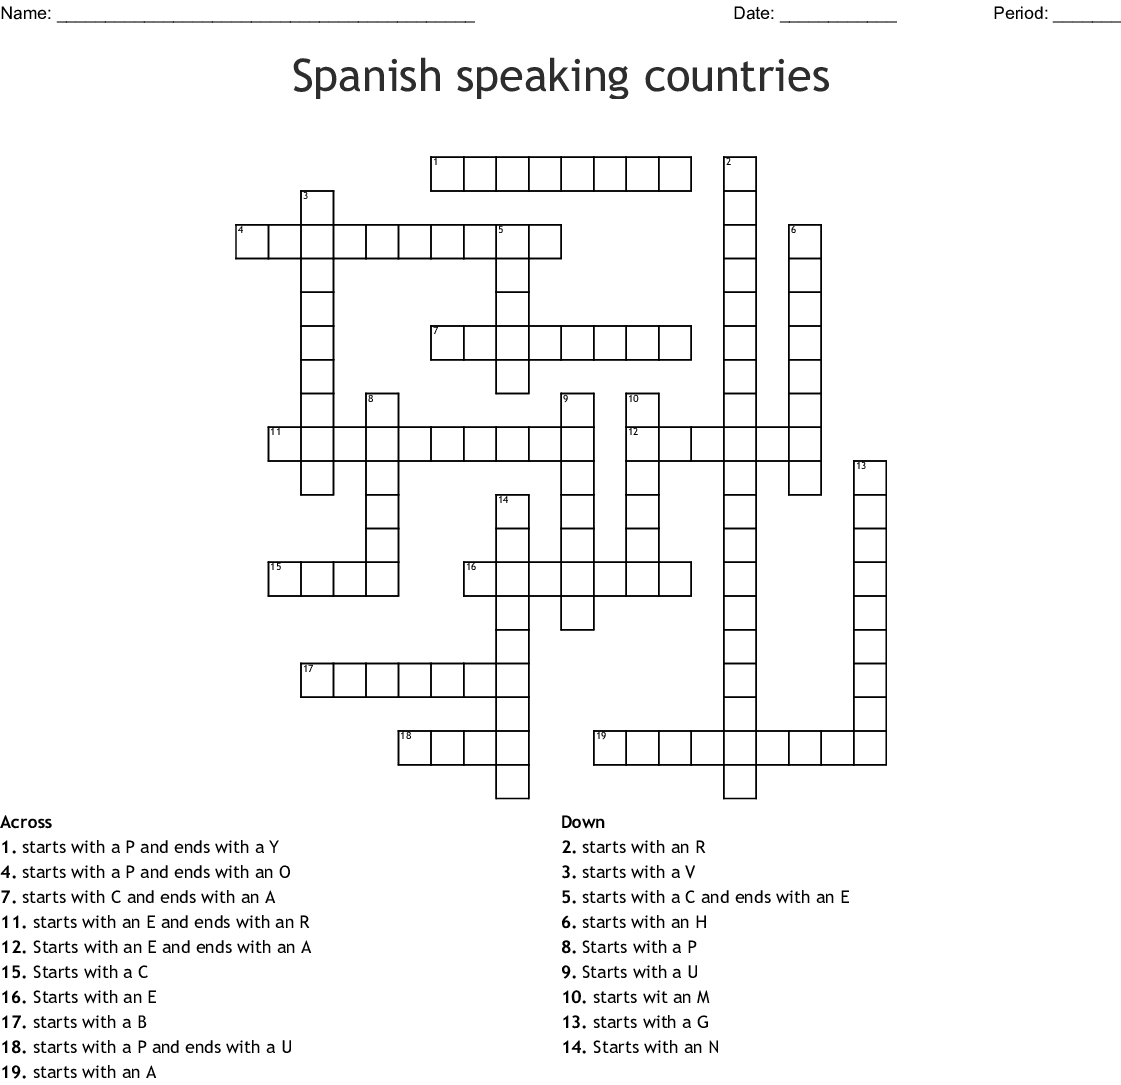 Spanish Speaking Countries Crossword